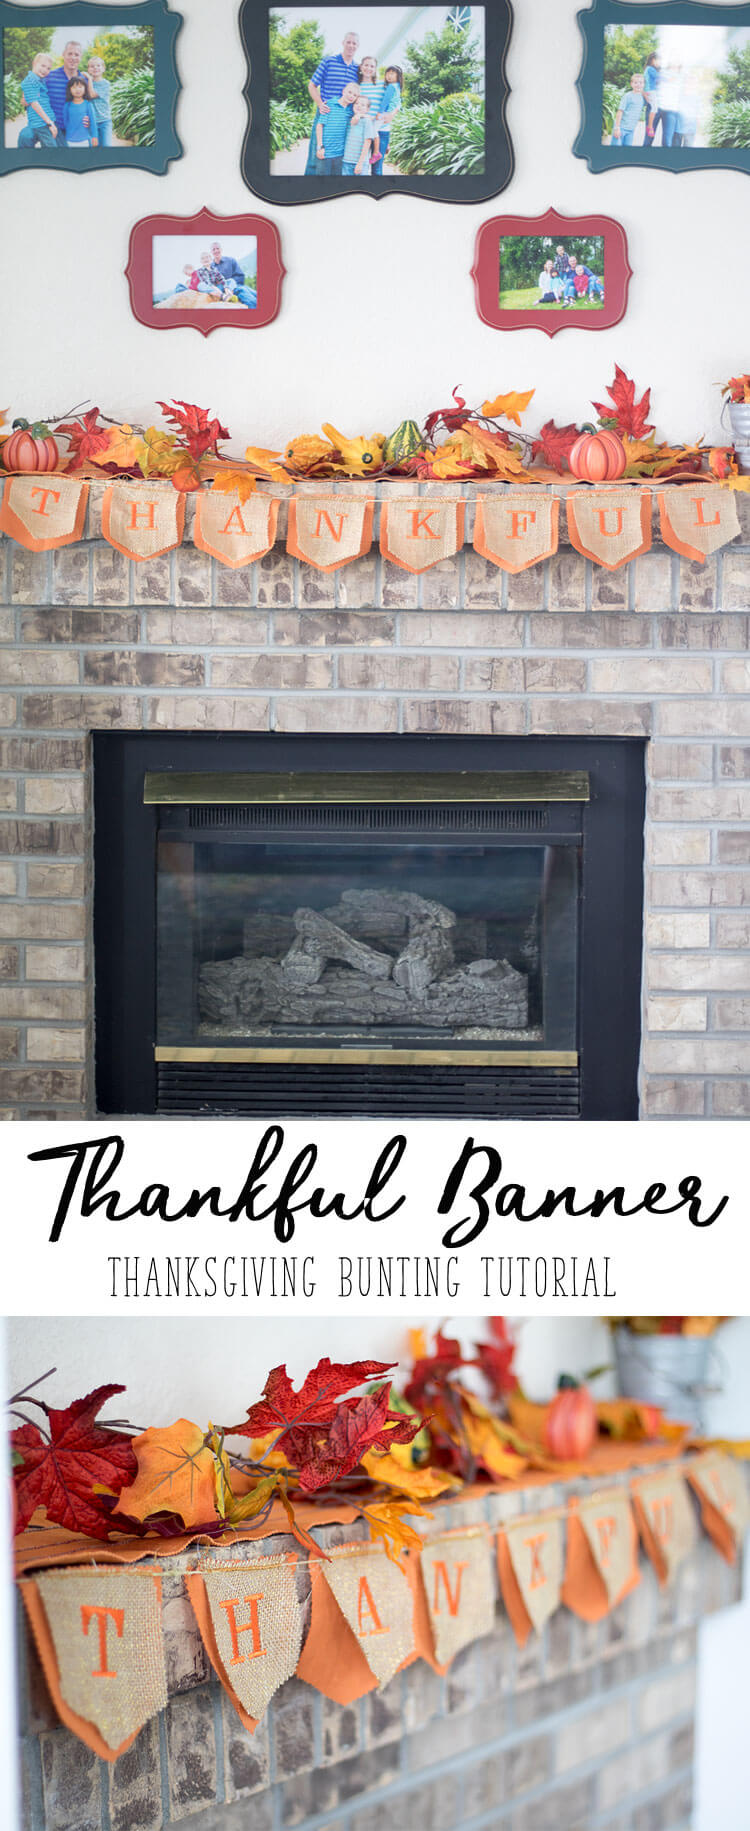 Thankful Banner a Thanksgiving Bunting tutorial from Life-Sew-Savory